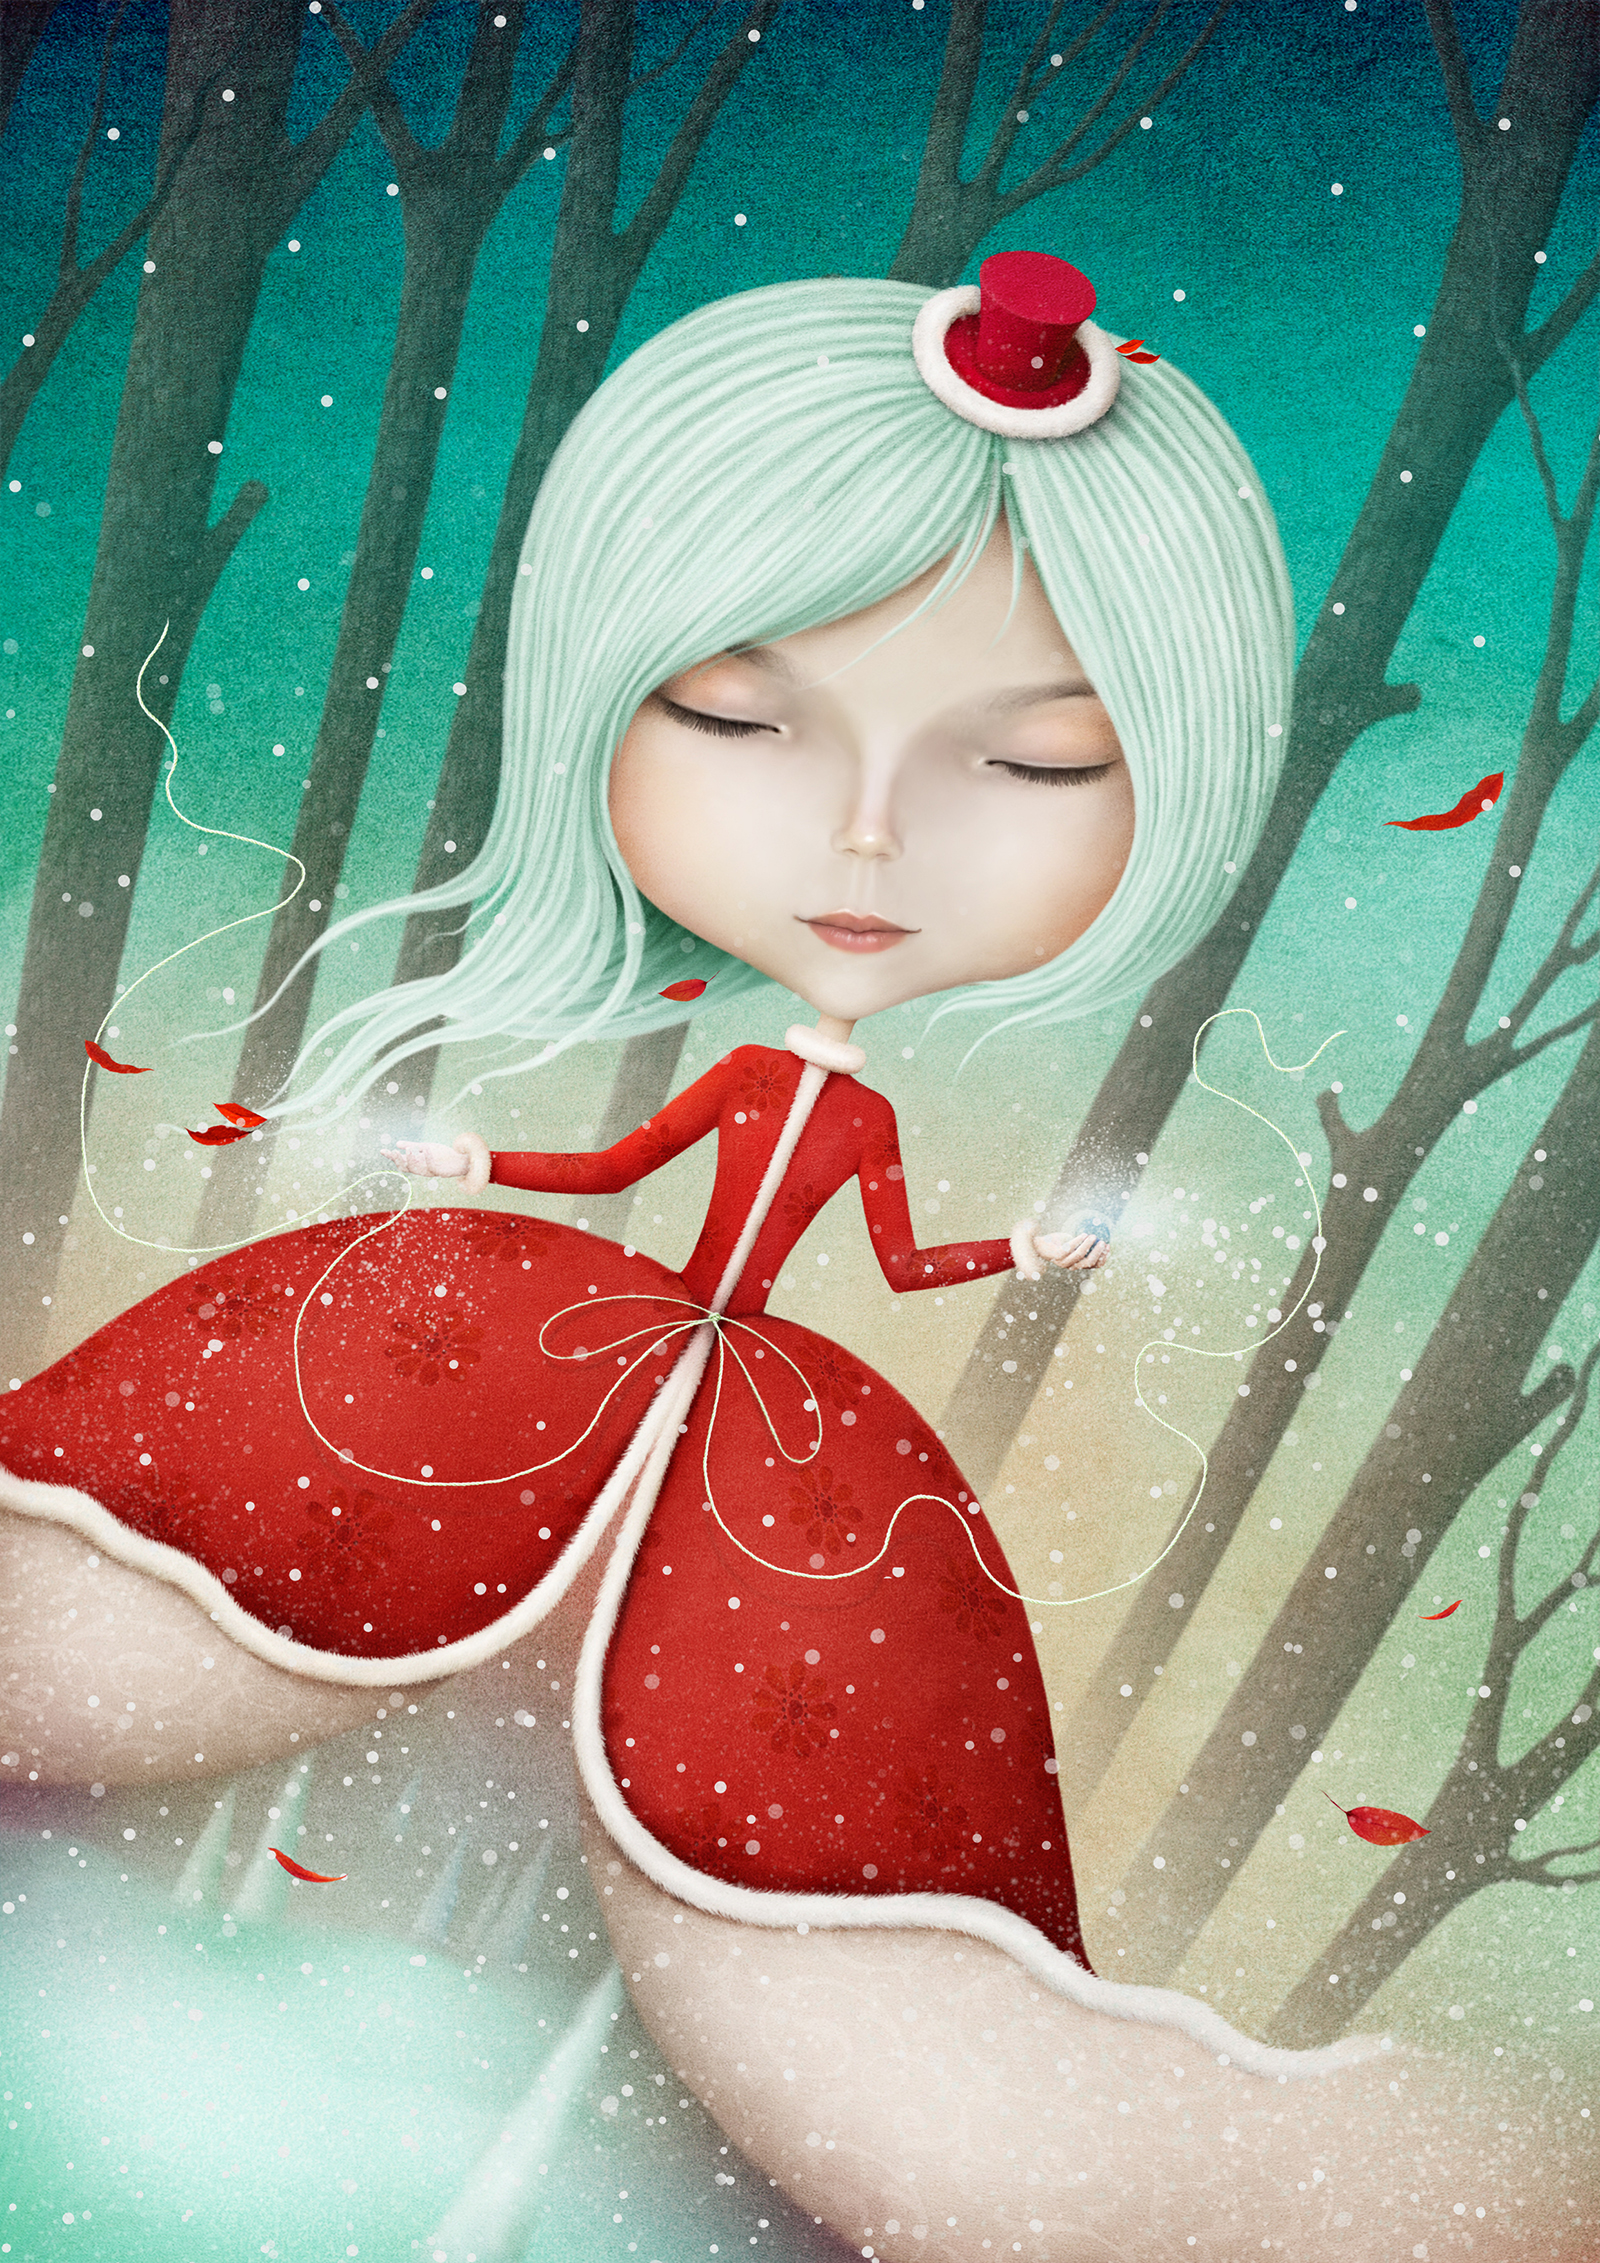 Red dress, elf, illustration 54689